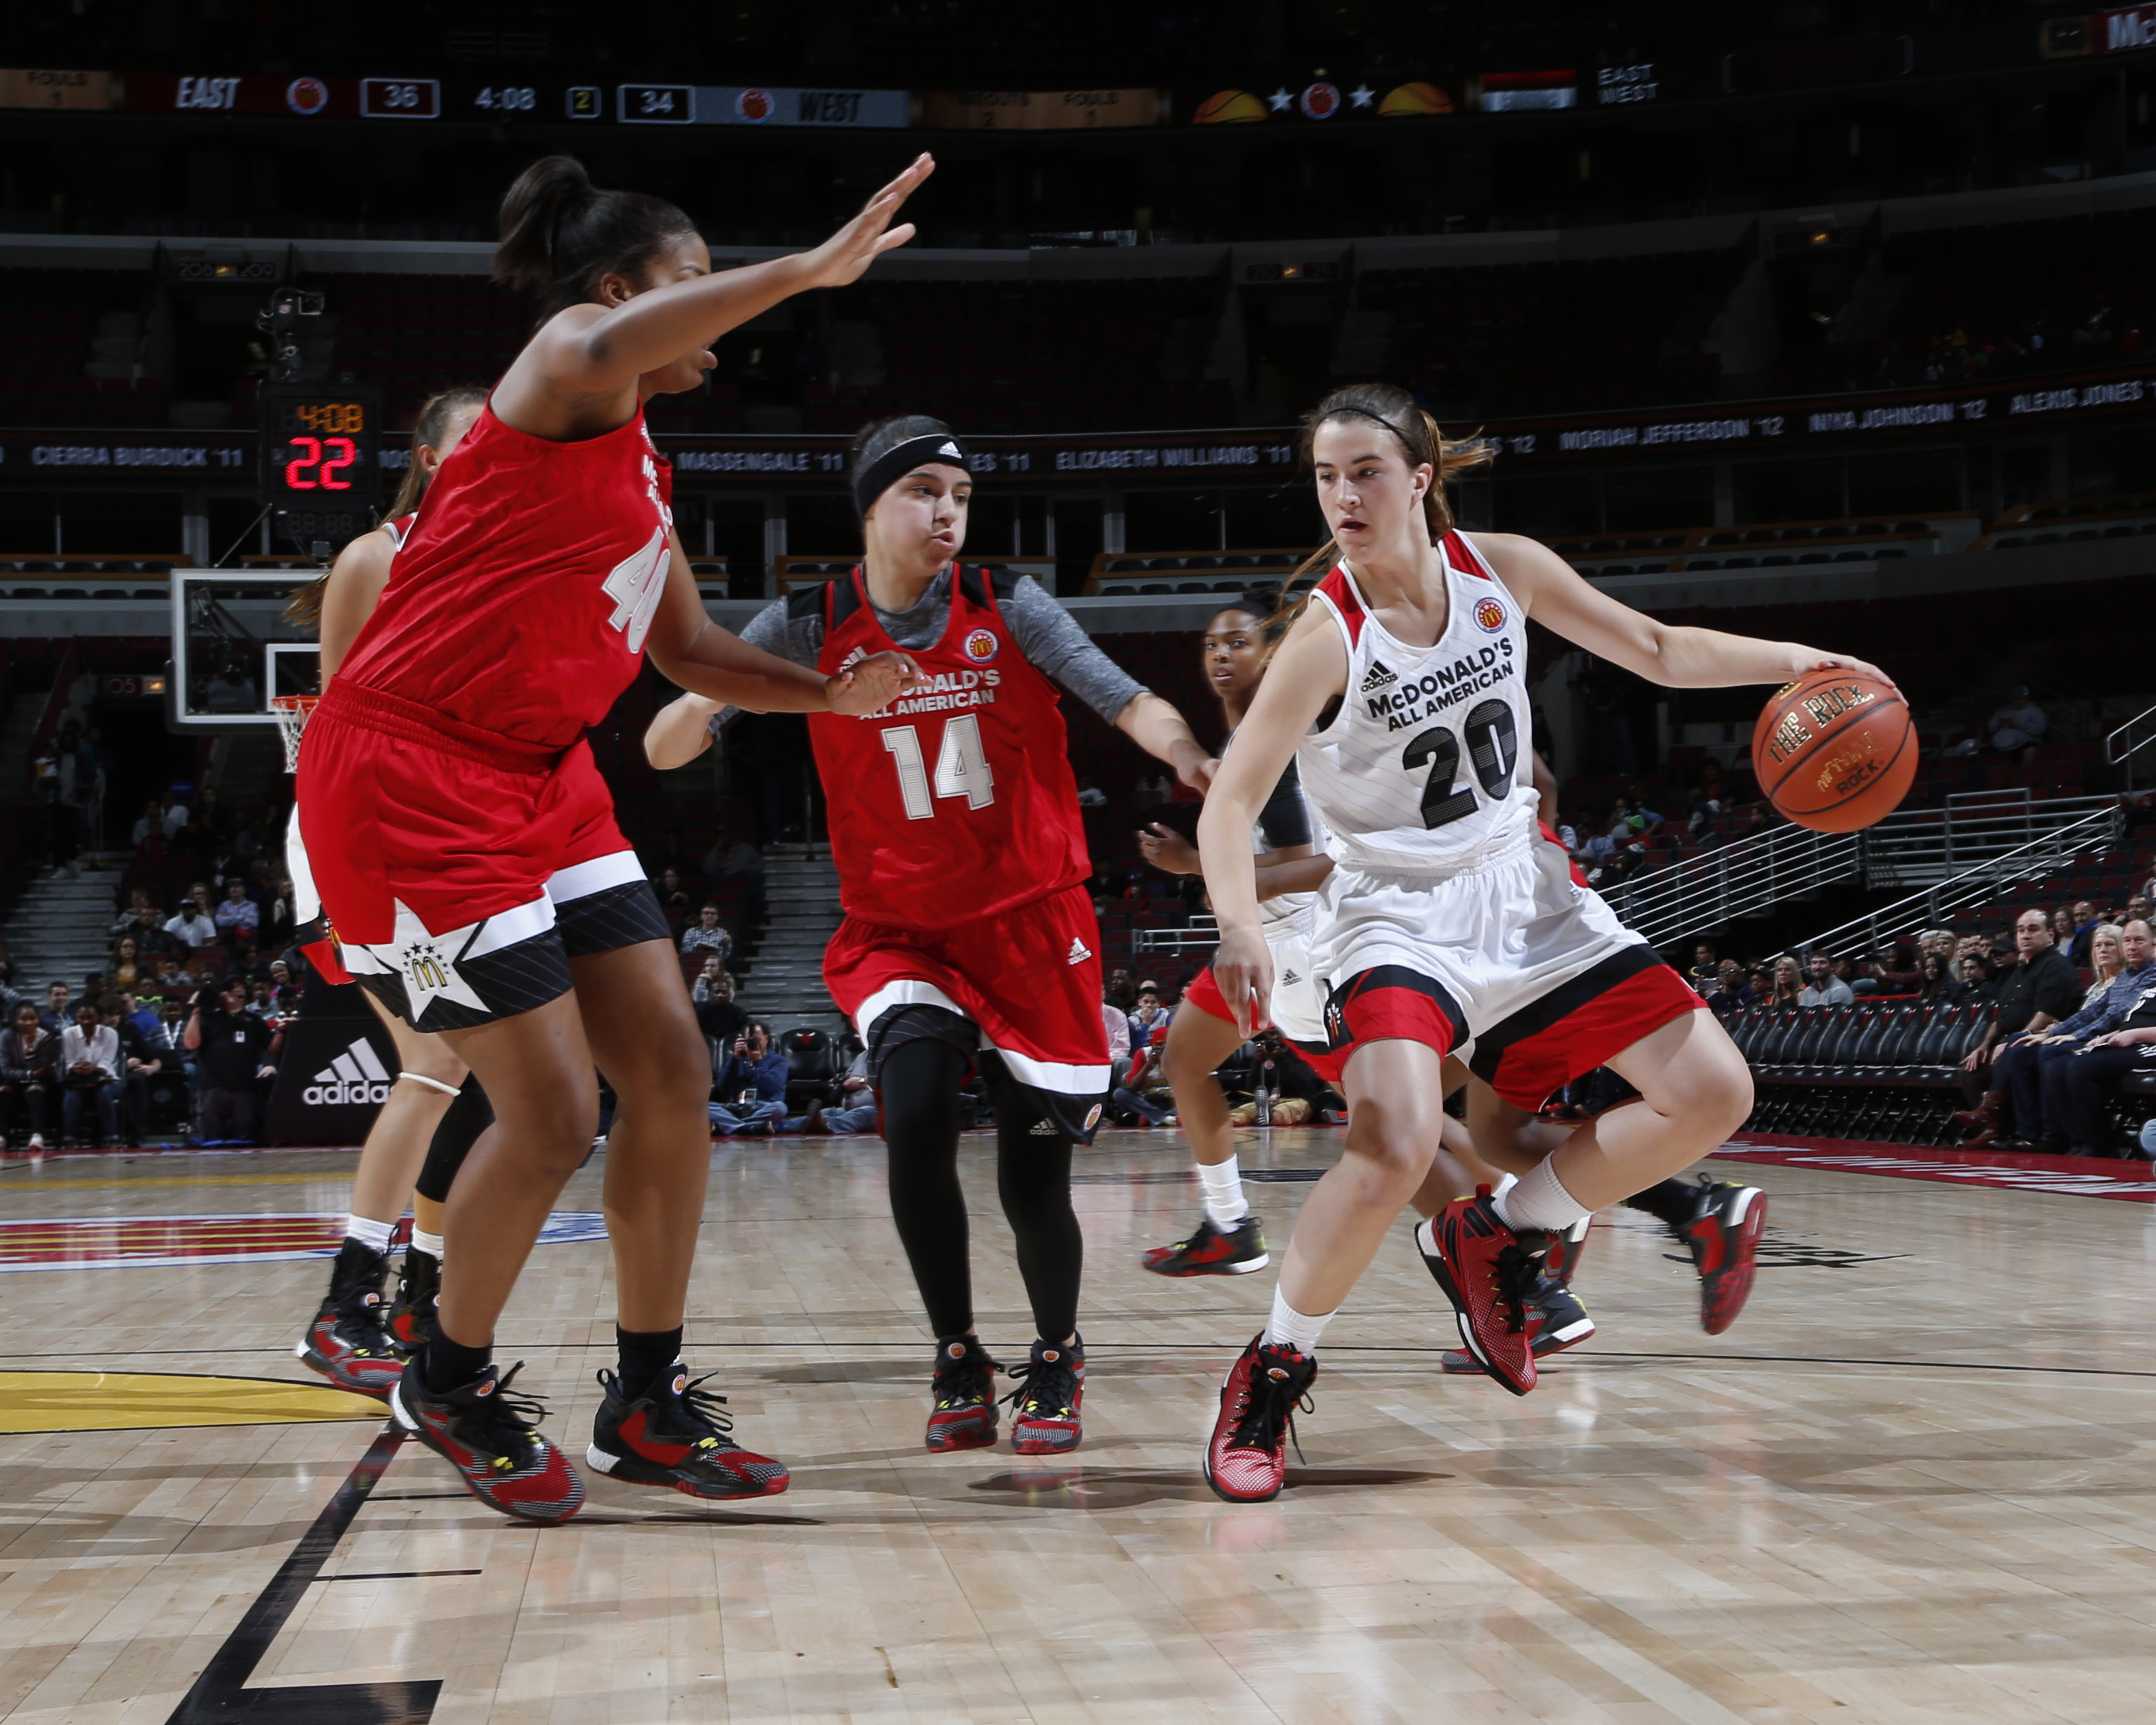 Sabrina Ionescu (20) drives to the basket against guard Amber Ramirez (14) during the McDonald's All-American Game (Photo: Brian Spurlock, USA TODAY Sports)